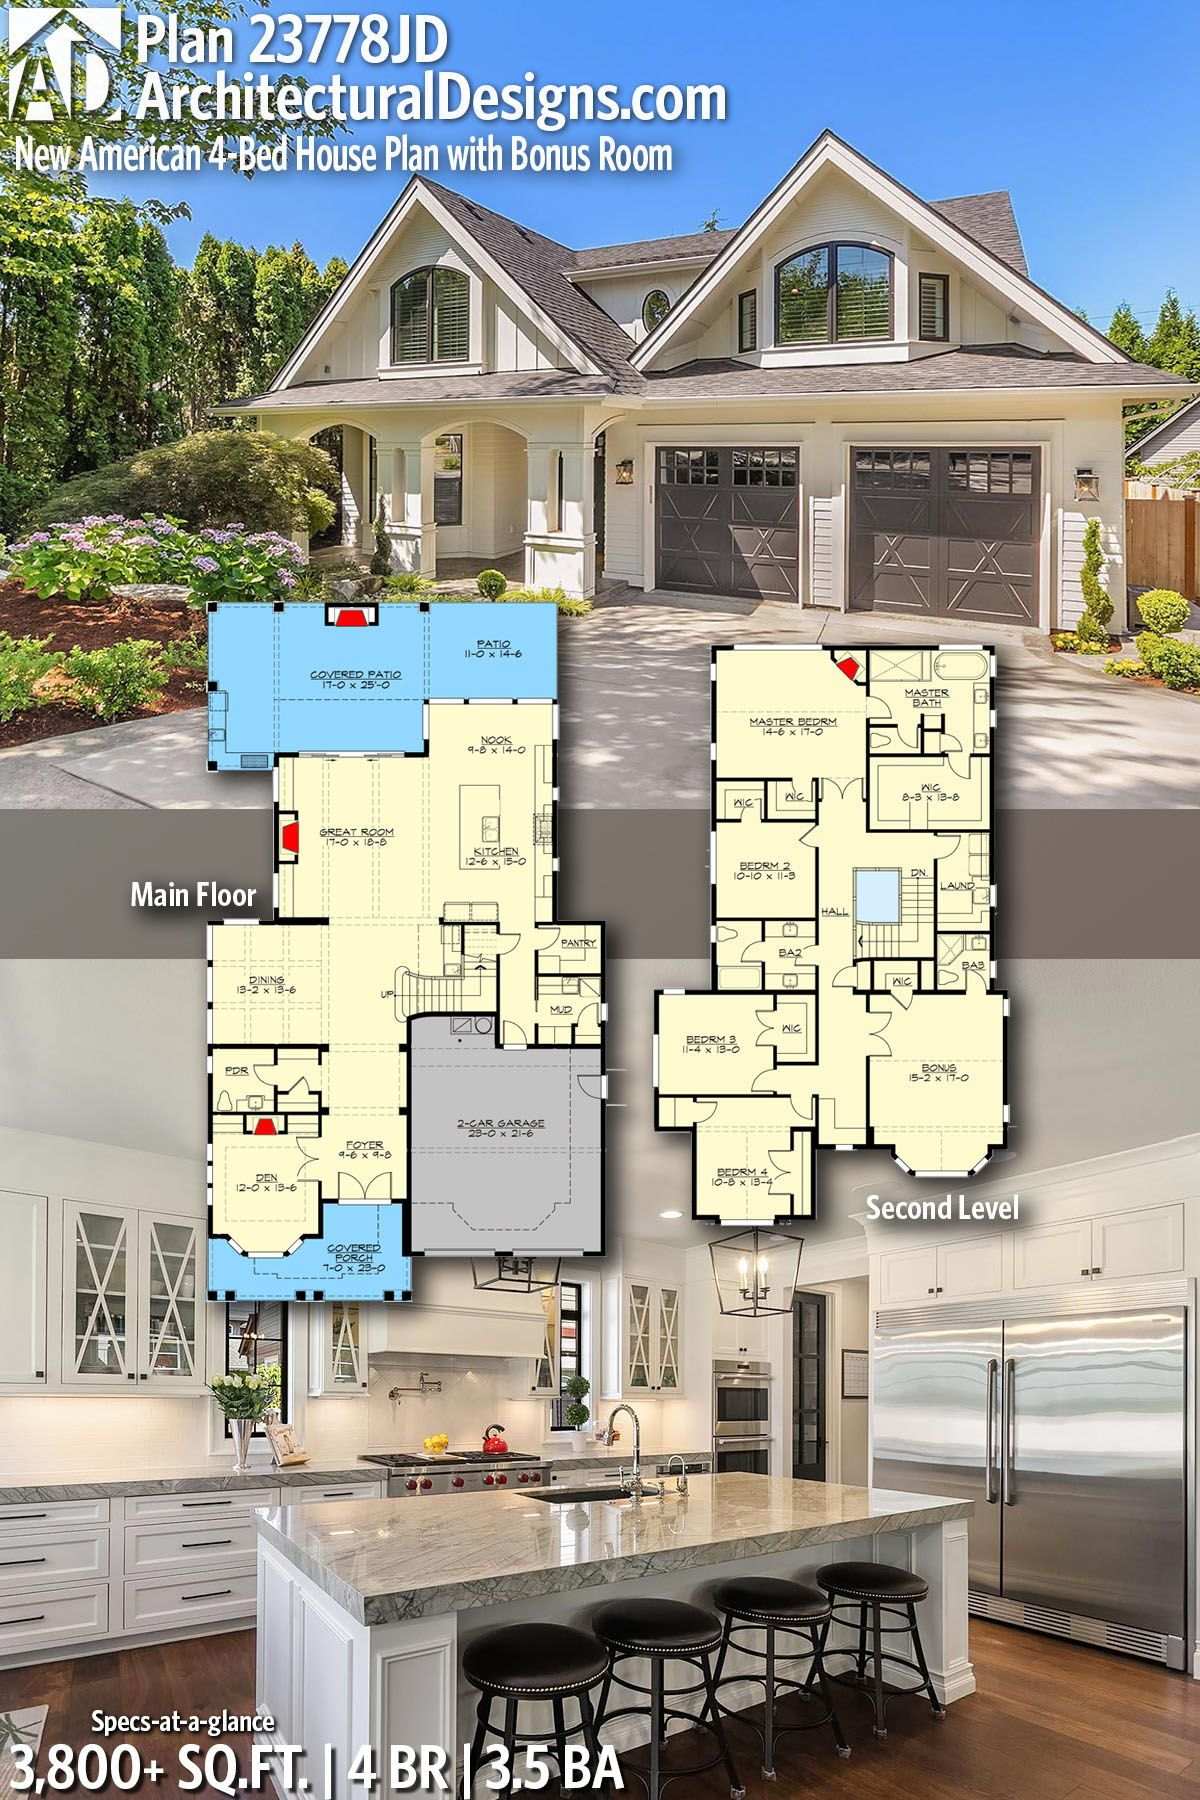 Plan 23778jd New American 4 Bed House Plan With Bonus Room House Plans American Houses Architecture House